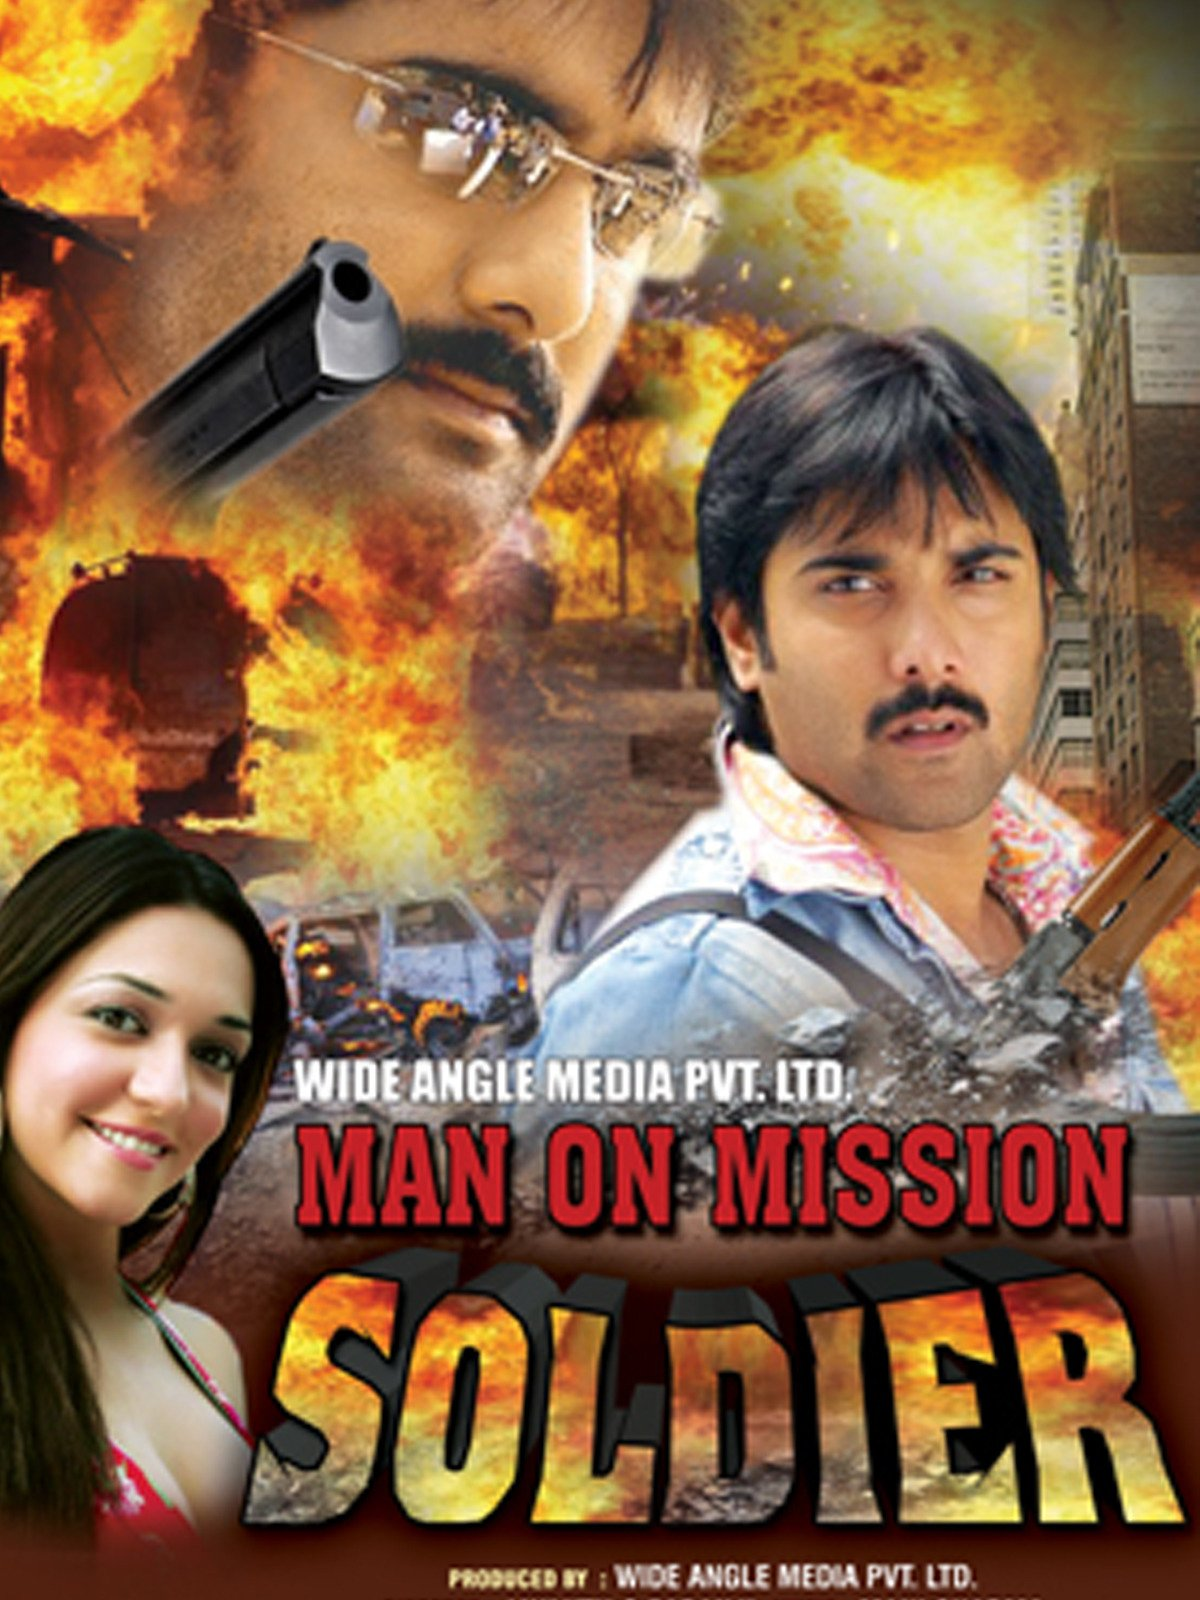 Man on Mission Soldier